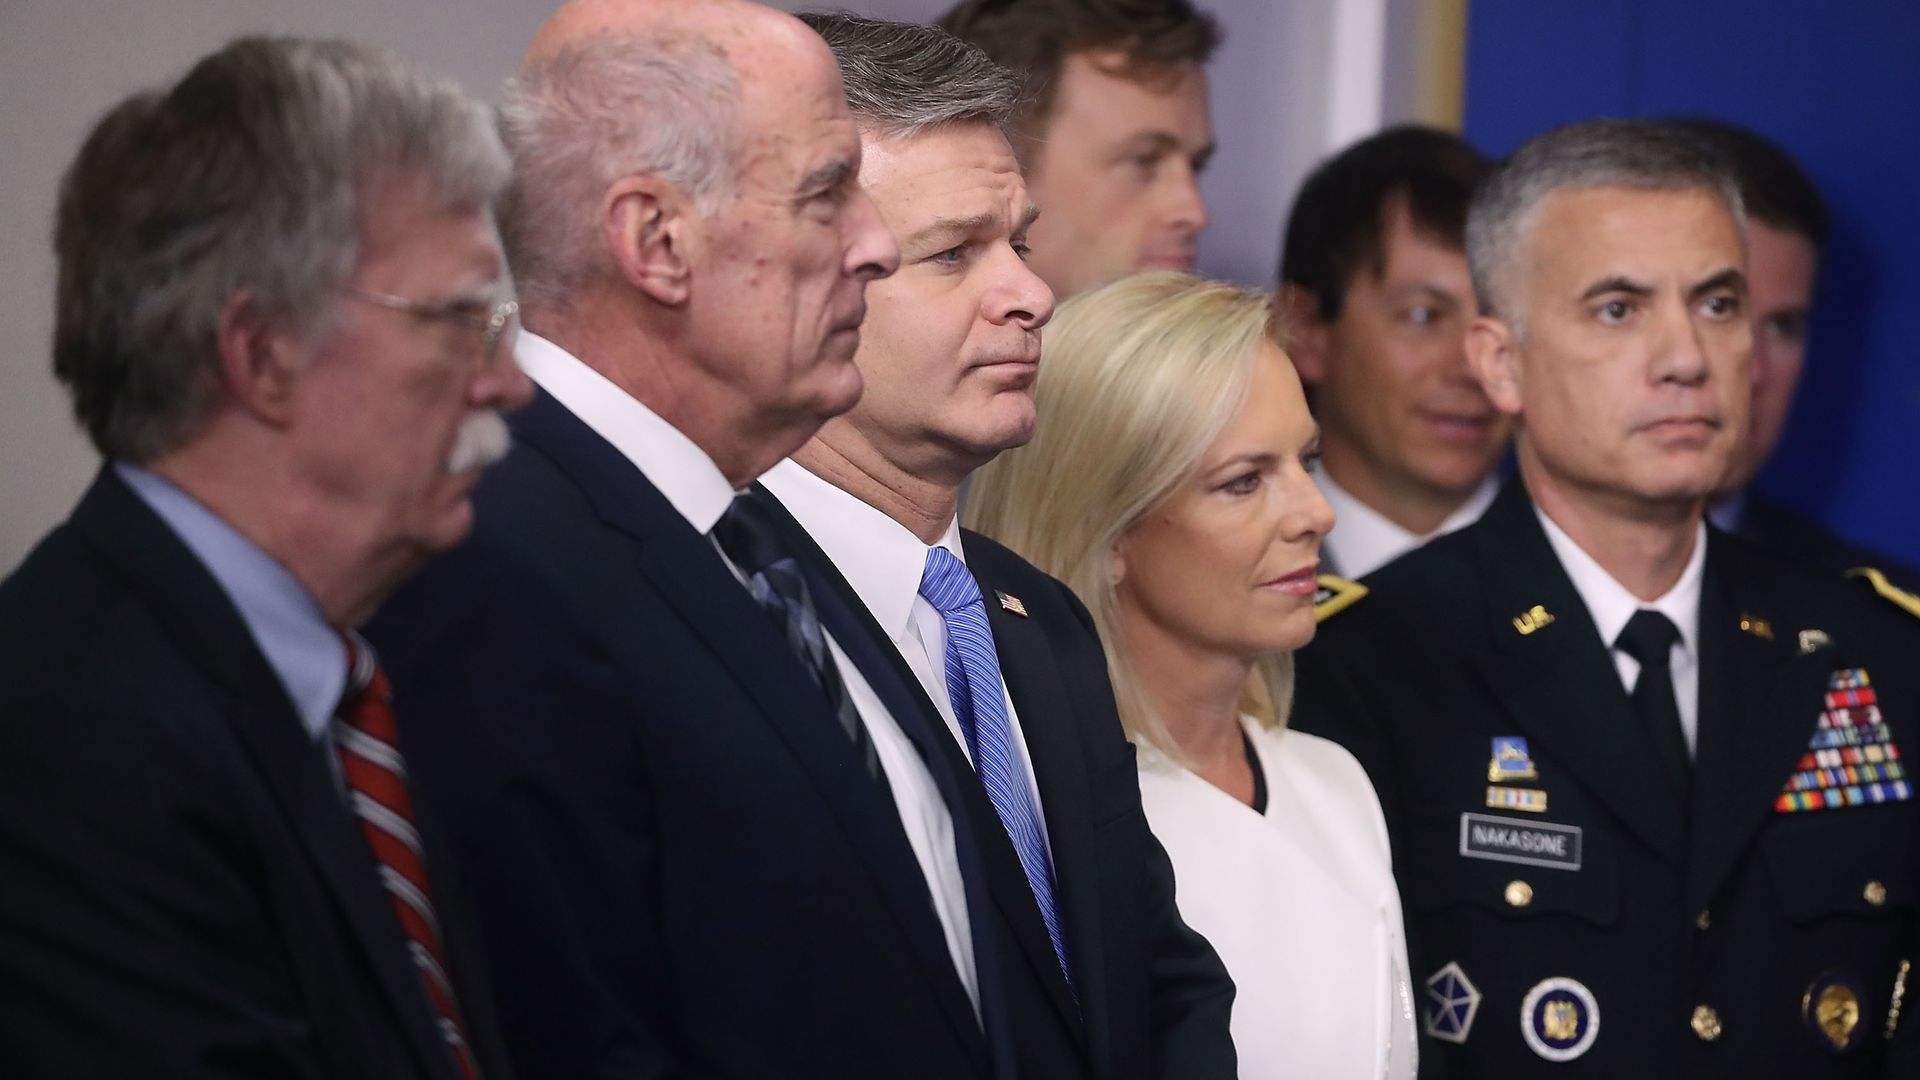 This photo shows top U.S. intelligence officials standing in the White House